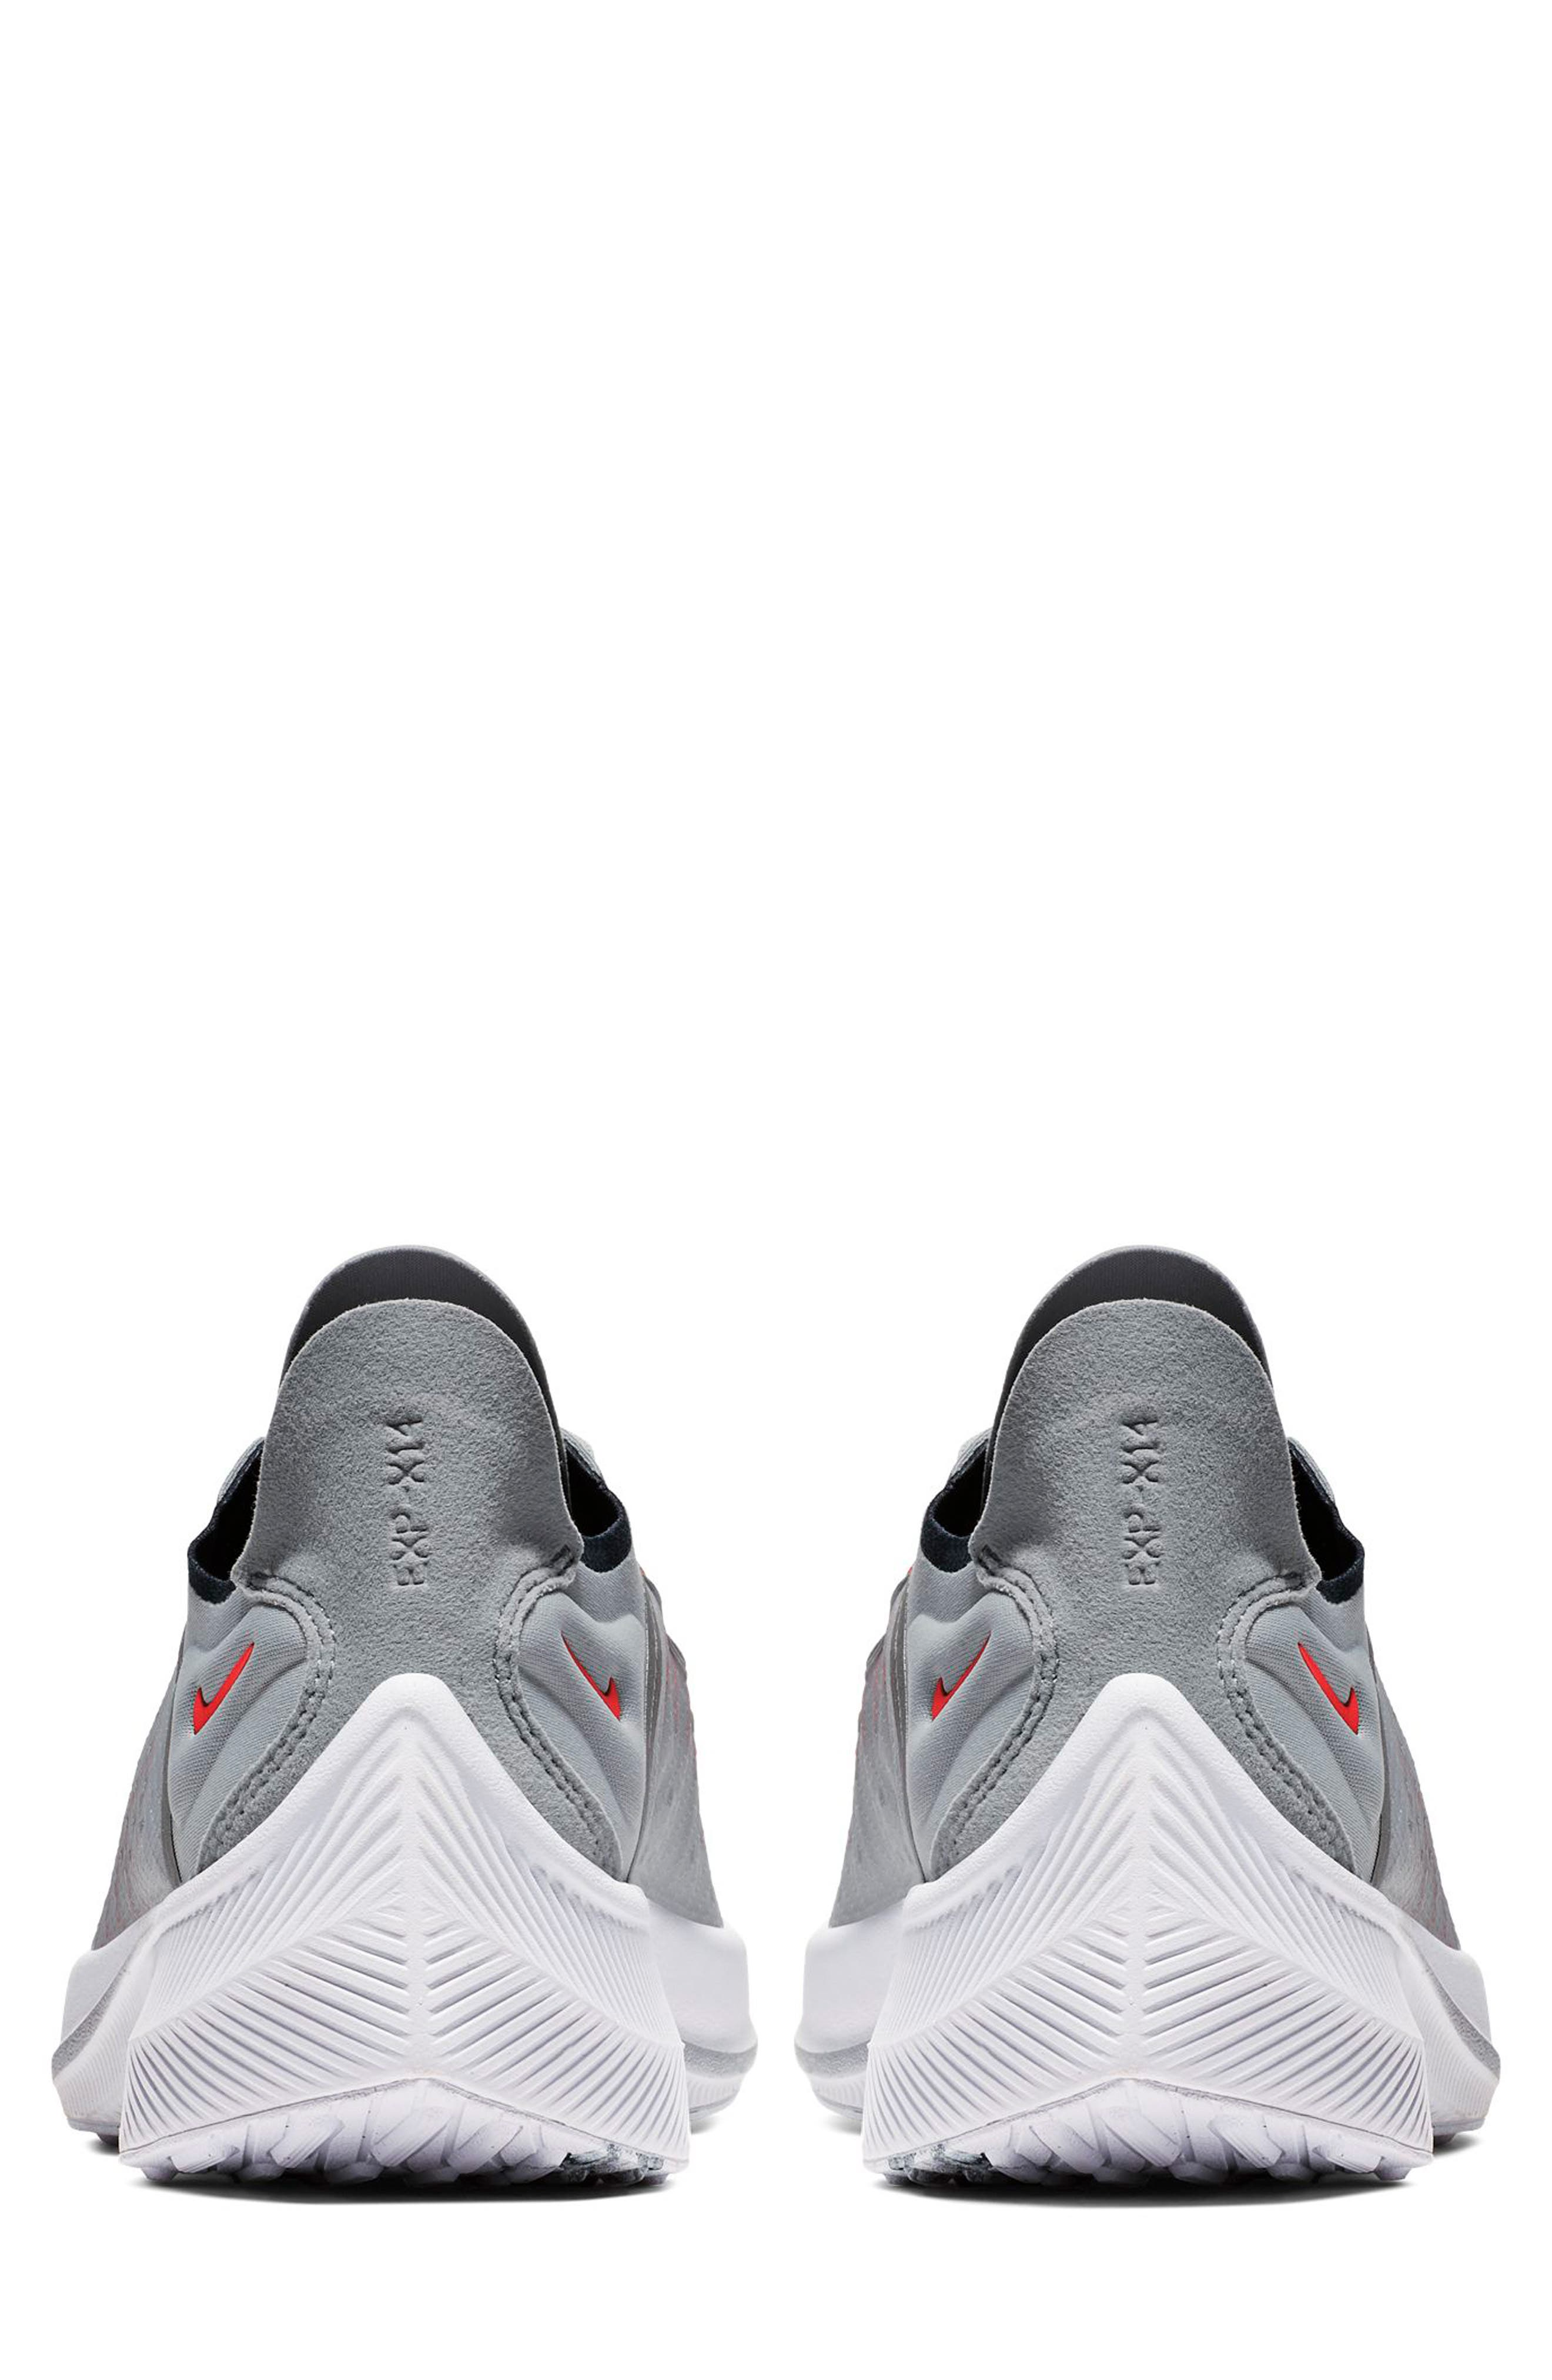 EXP-X14 HR Running Shoe,                             Alternate thumbnail 2, color,                             SILVER/ CRIMSON/ OBSIDIAN